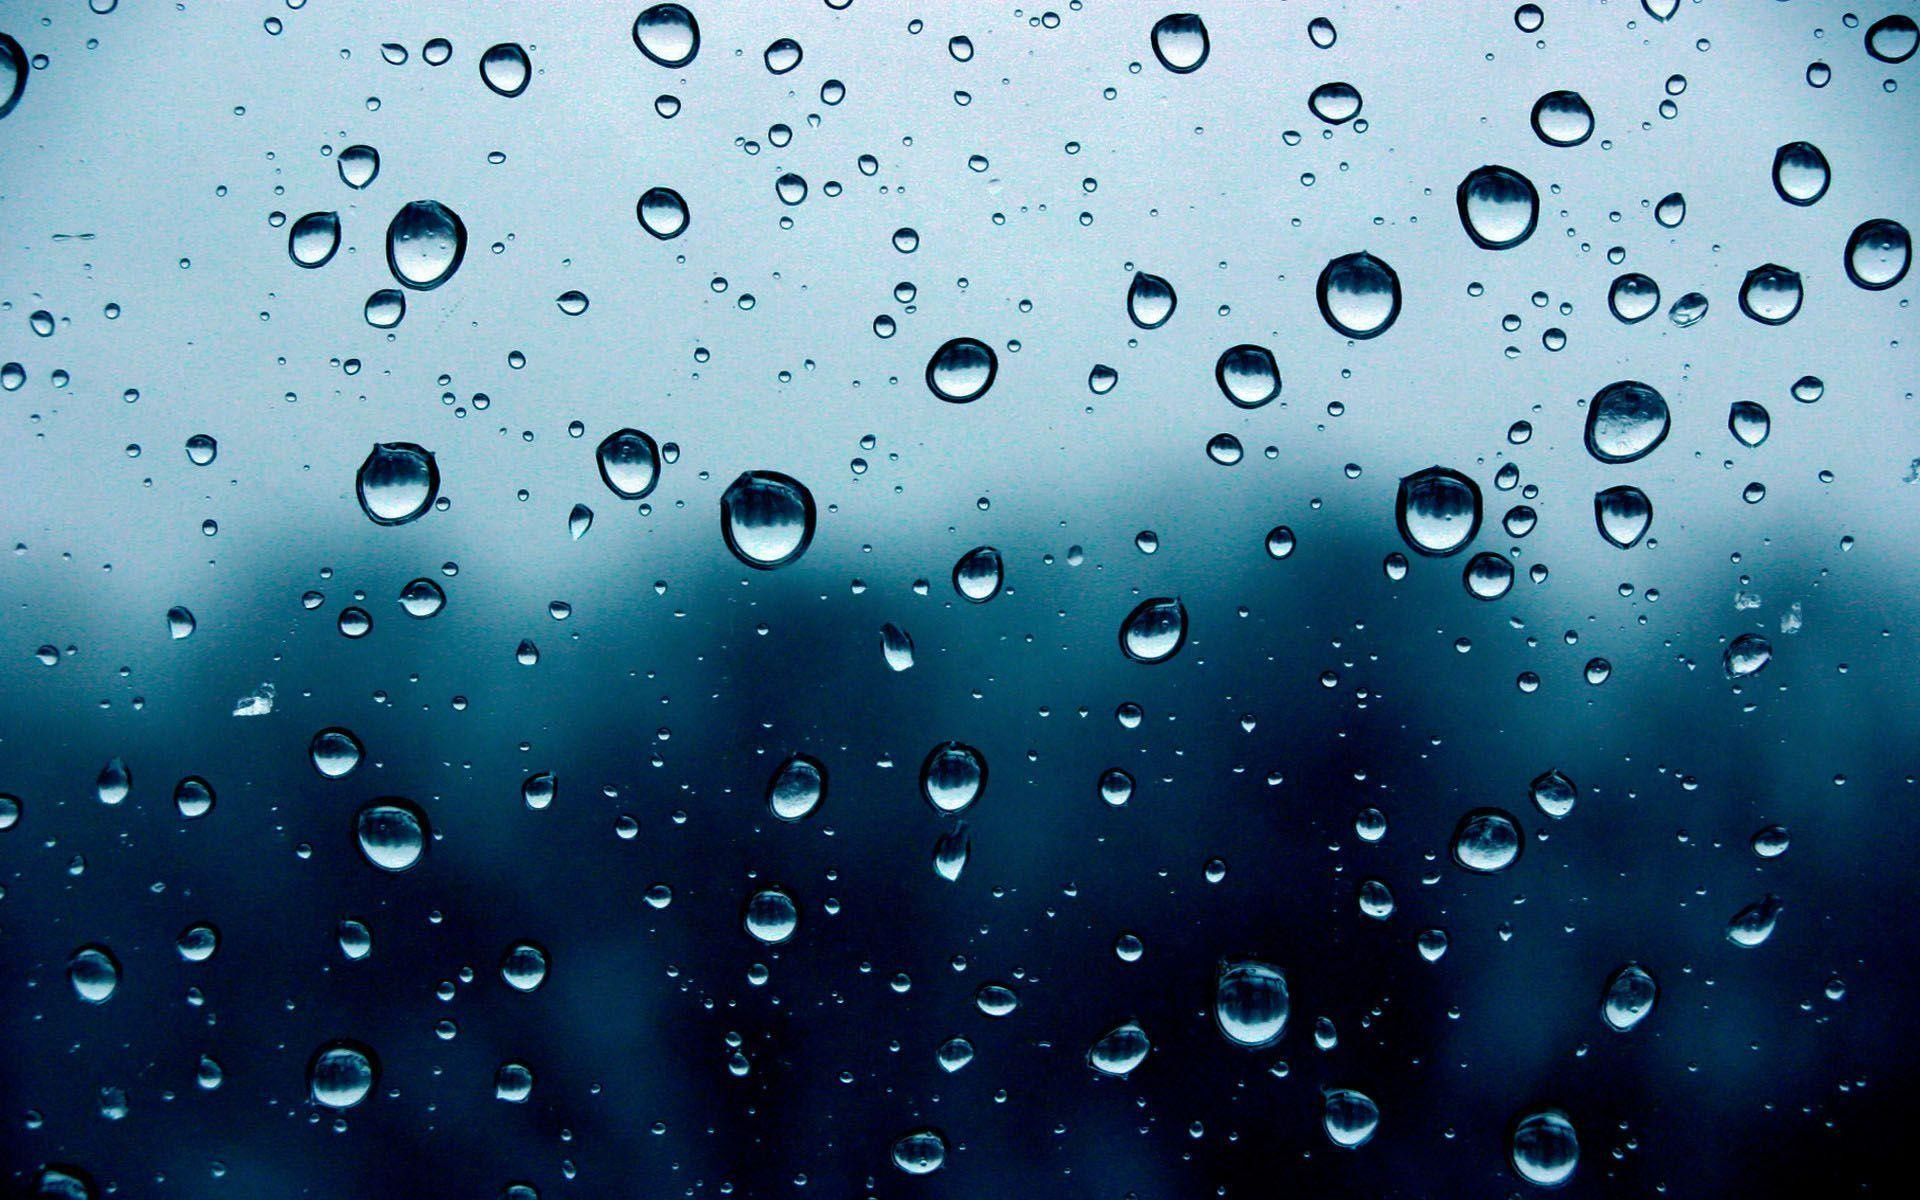 1920x1200 Rainfall Wallpaper Hd - Viewing Gallery